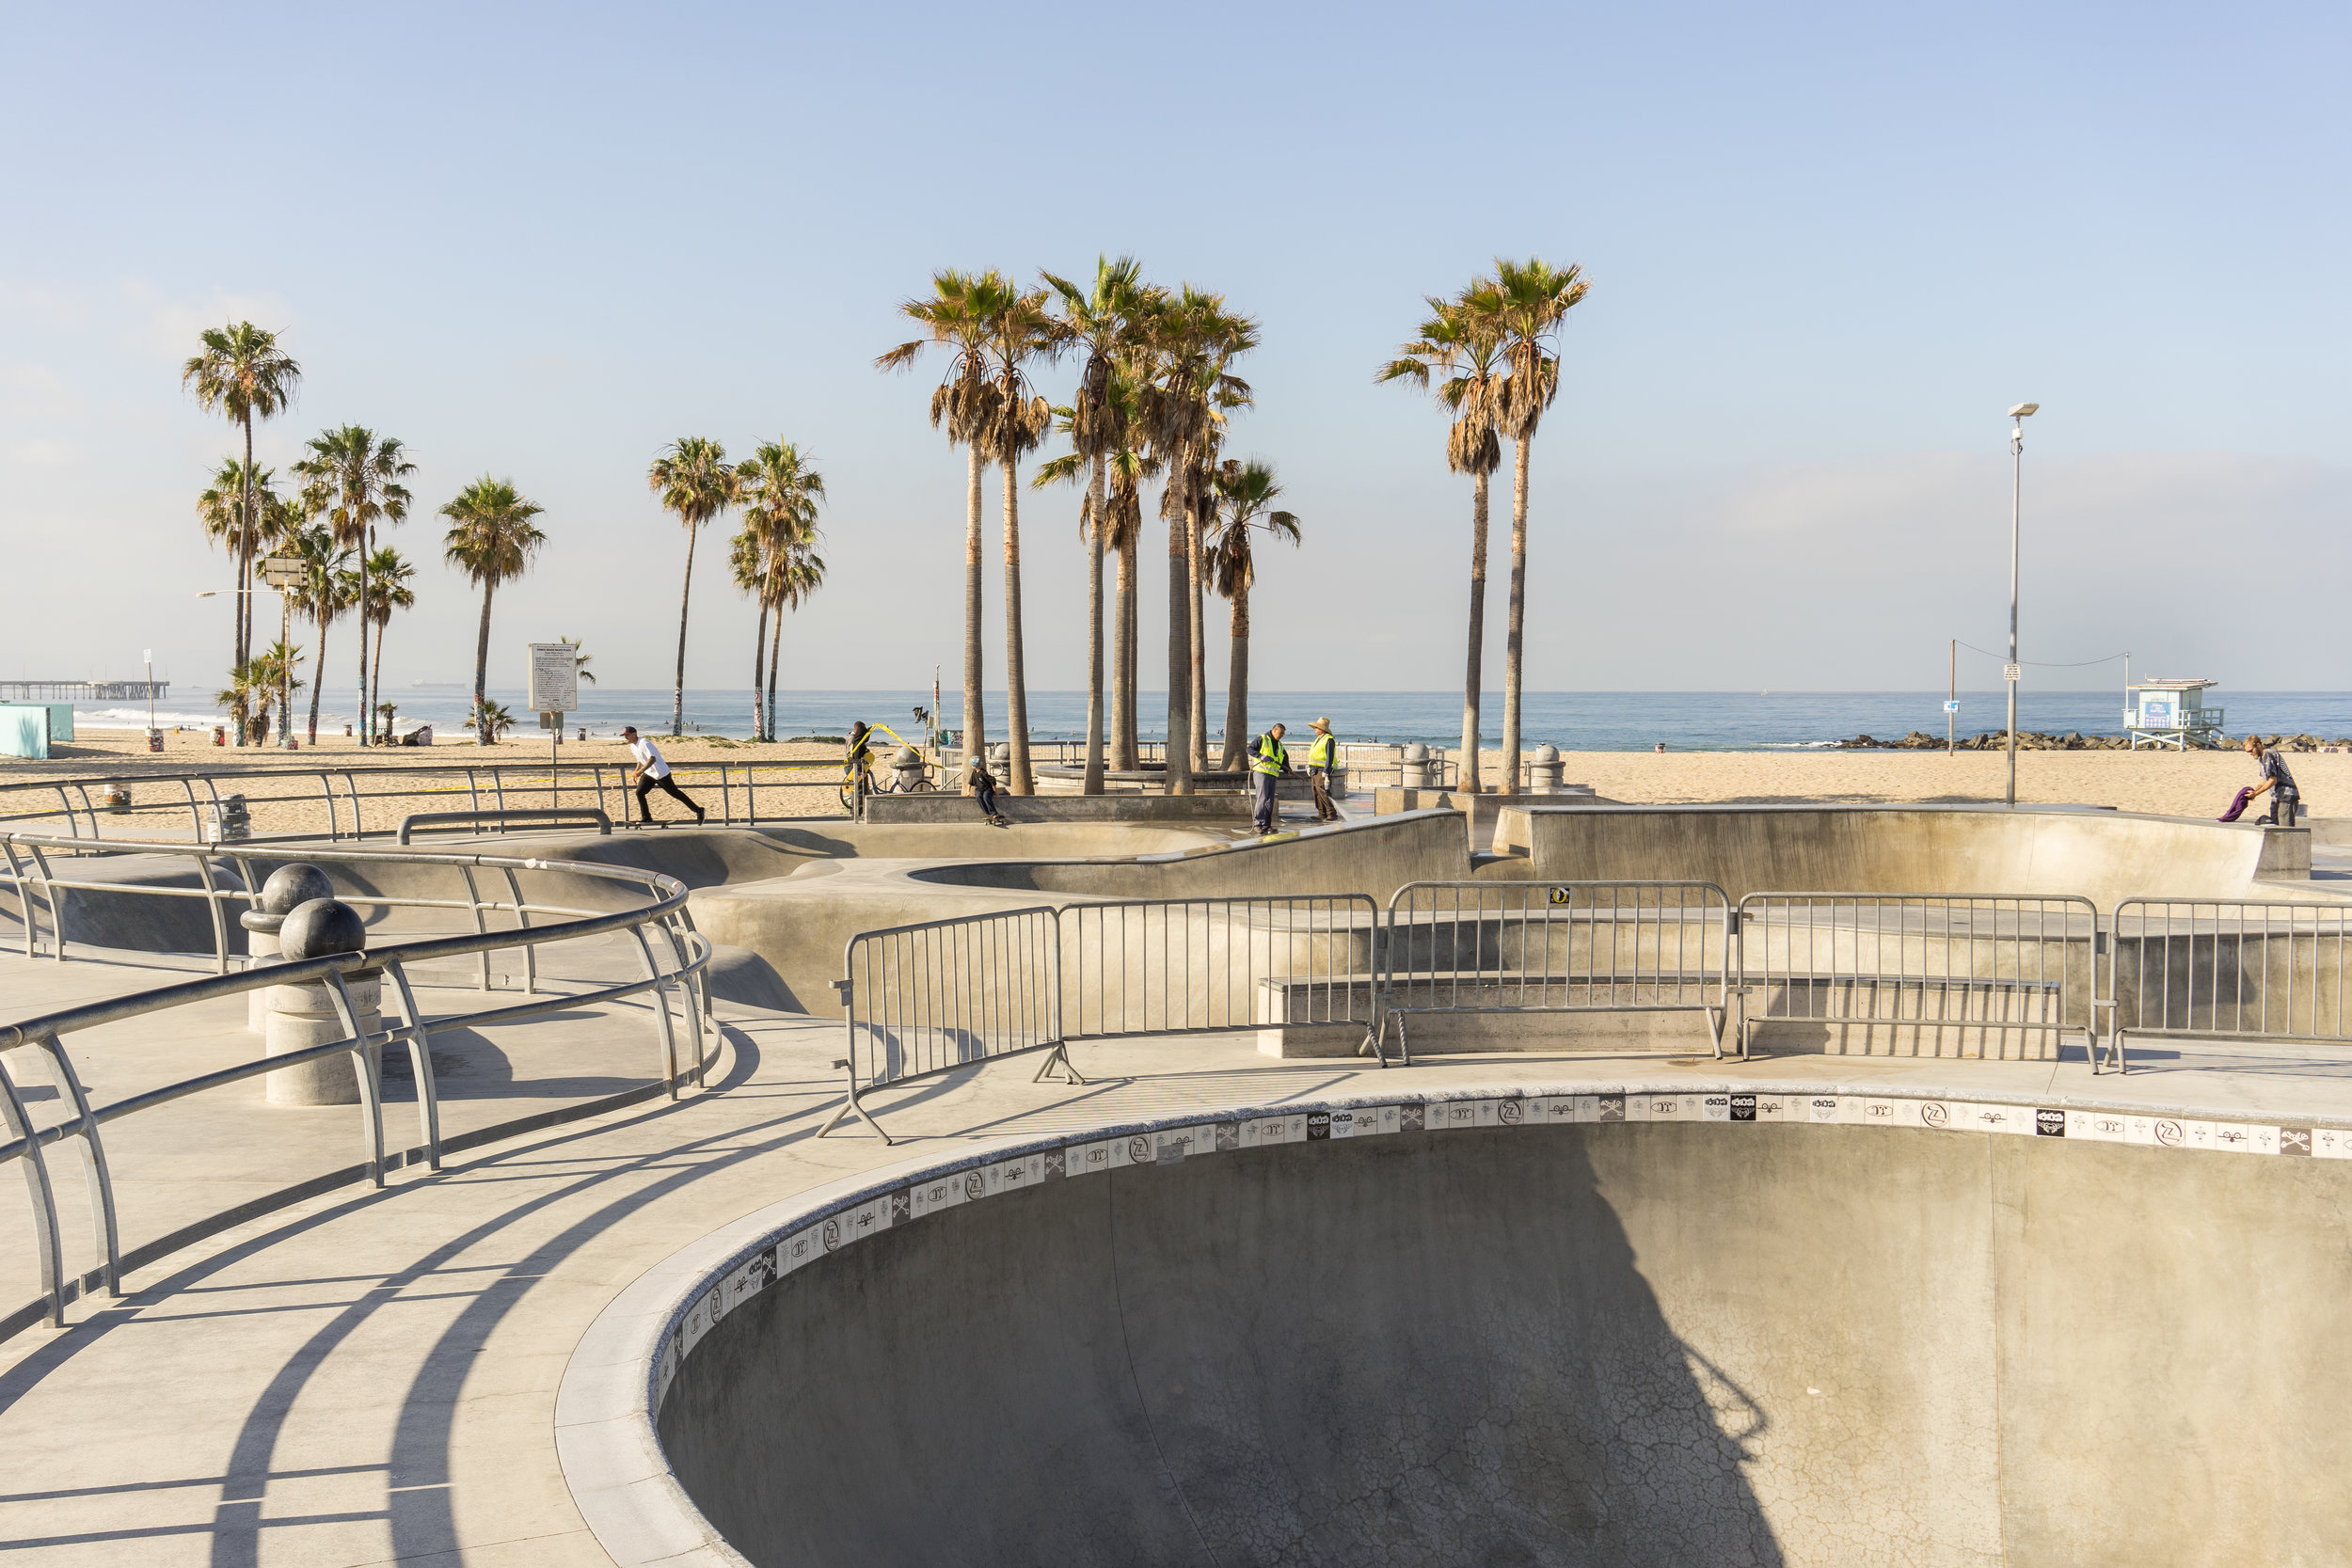 Venice Beach skatepark, Los Angeles, California. Photo: Tiago Silva Nunes